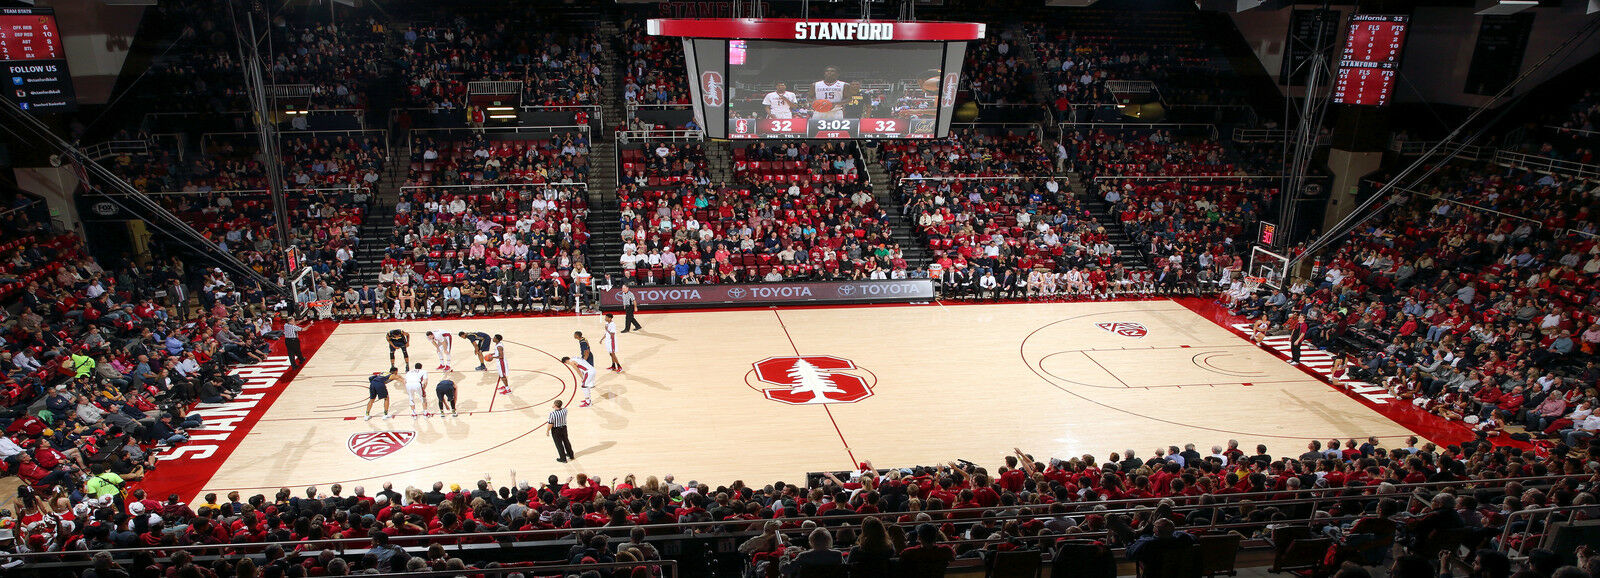 Washington State Cougars at Stanford Cardinal Basketball